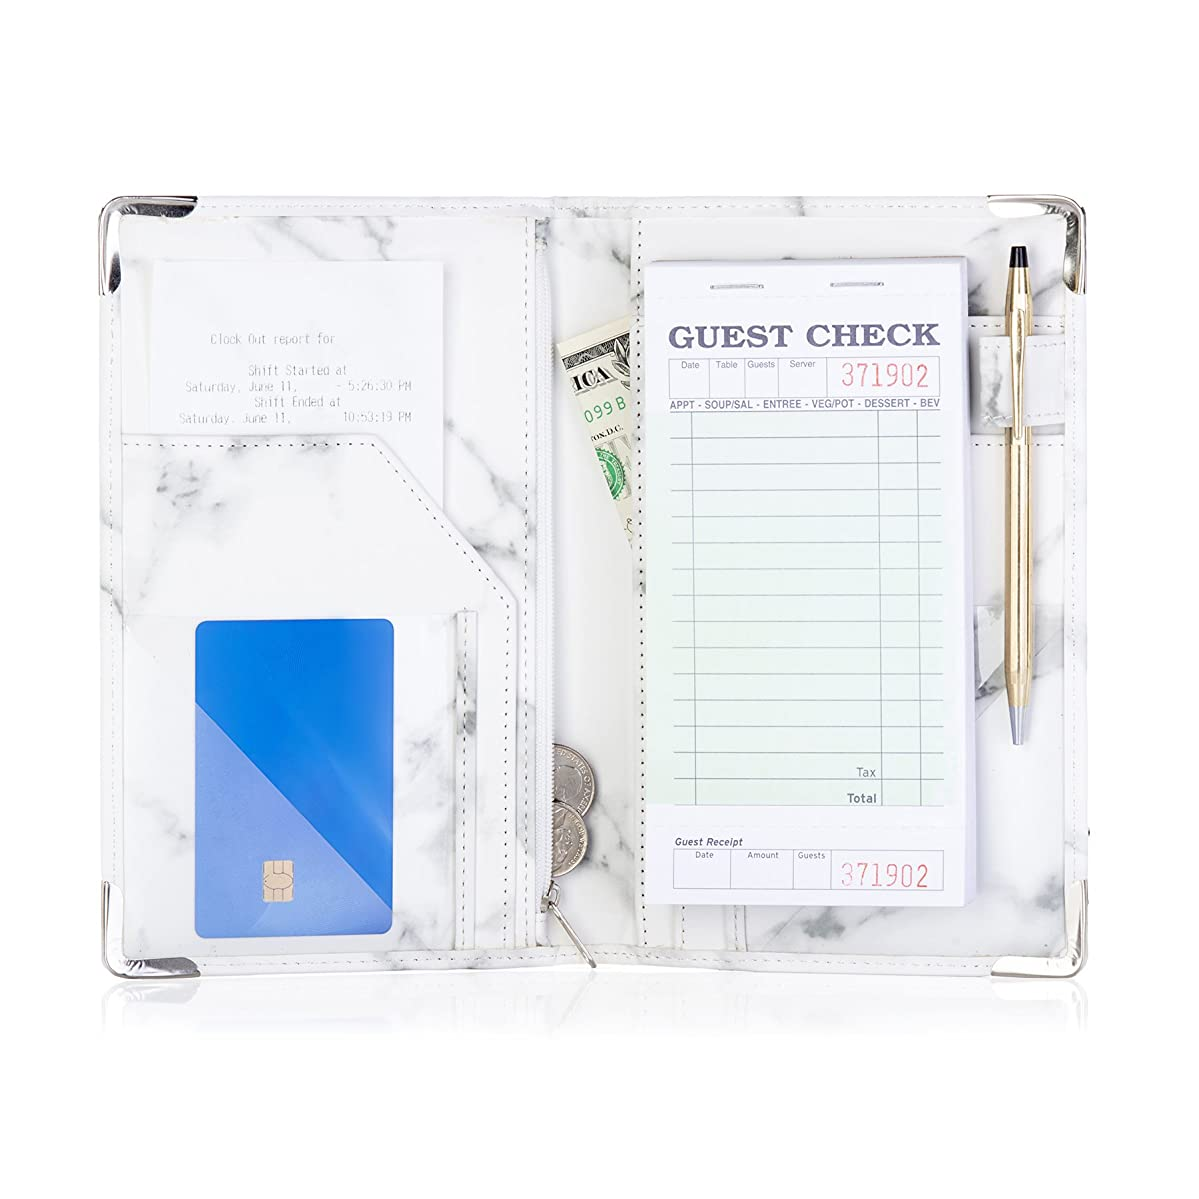 Sonic Server Marble Style Deluxe Server Book for Restaurant Waiter Waitress Waitstaff | Classy White Marble | 9 Pockets Includes Zipper Pouch with Pen Holder | Holds Guest Checks, Money, Order Pad